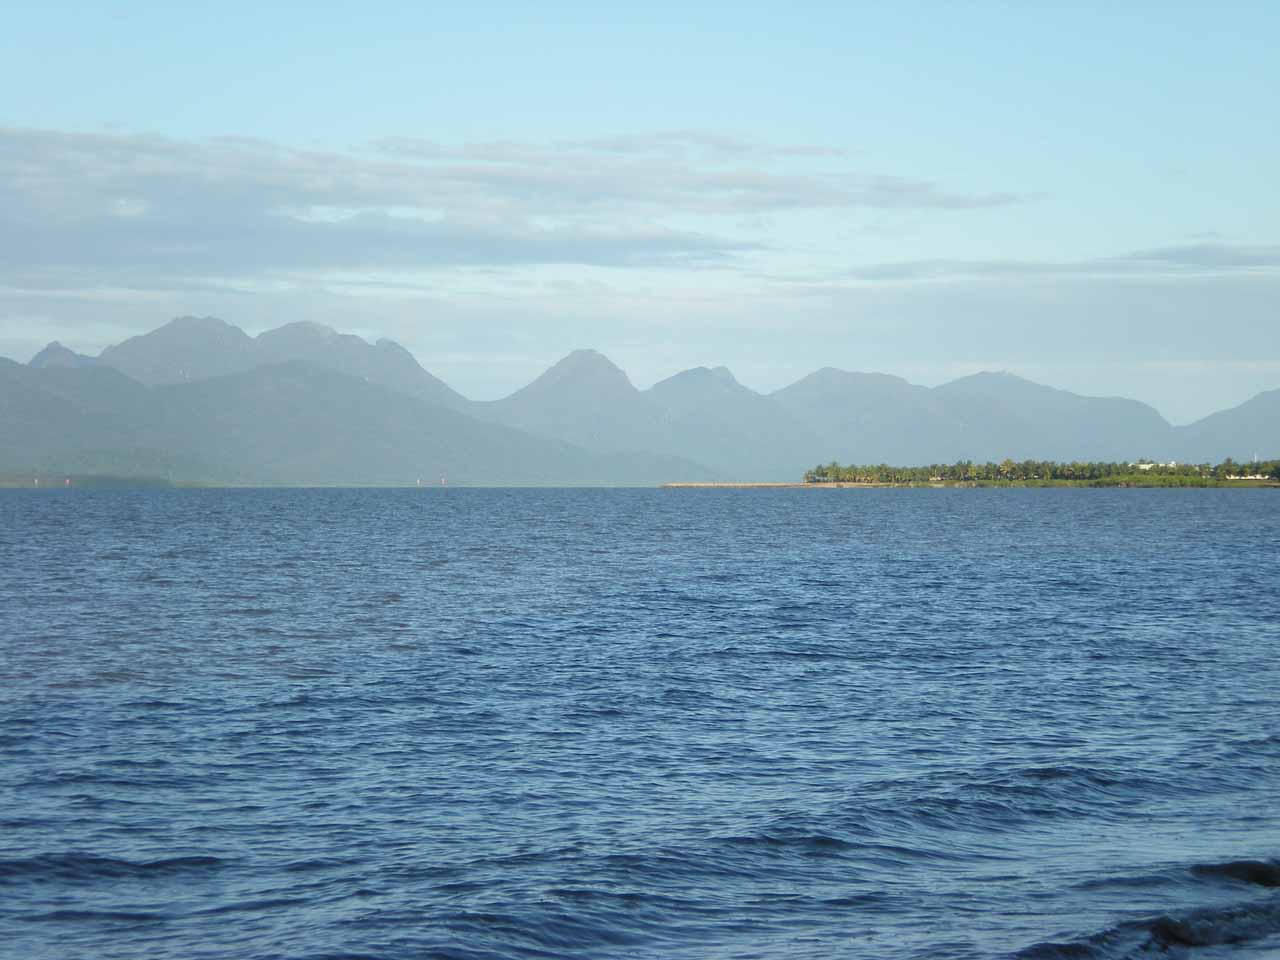 While visiting Jourama Falls and other neighboring waterfalls, we had stayed in Cardwell where we got these views towards the remote Hinchinbrook Island